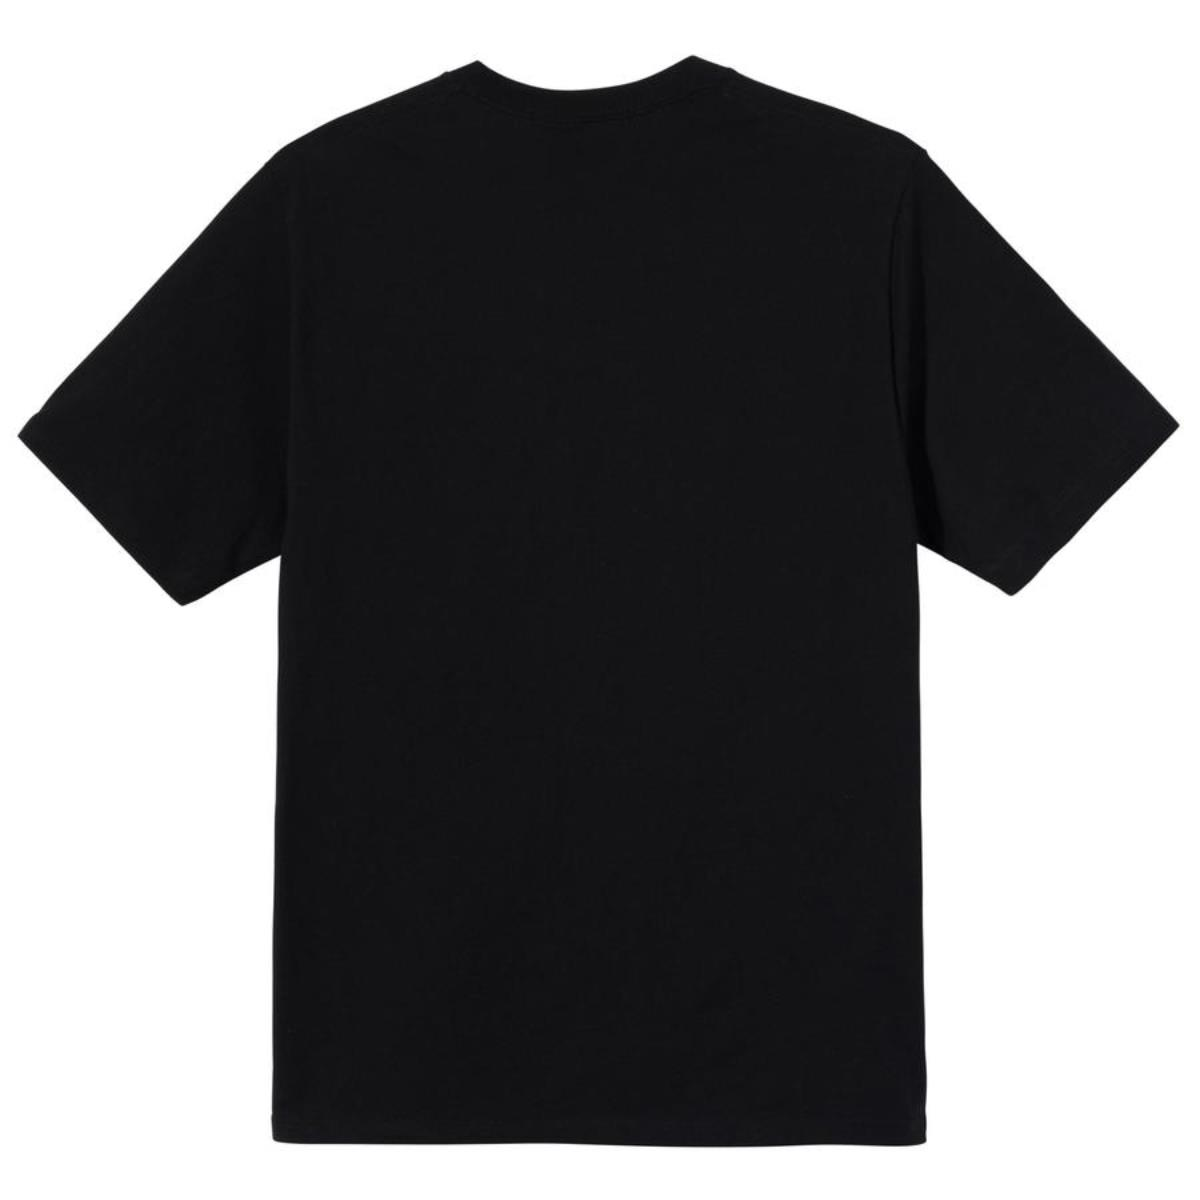 Stussy t-shirt something's cookin uomo STUSSY | T-shirt | 1904657BLACK